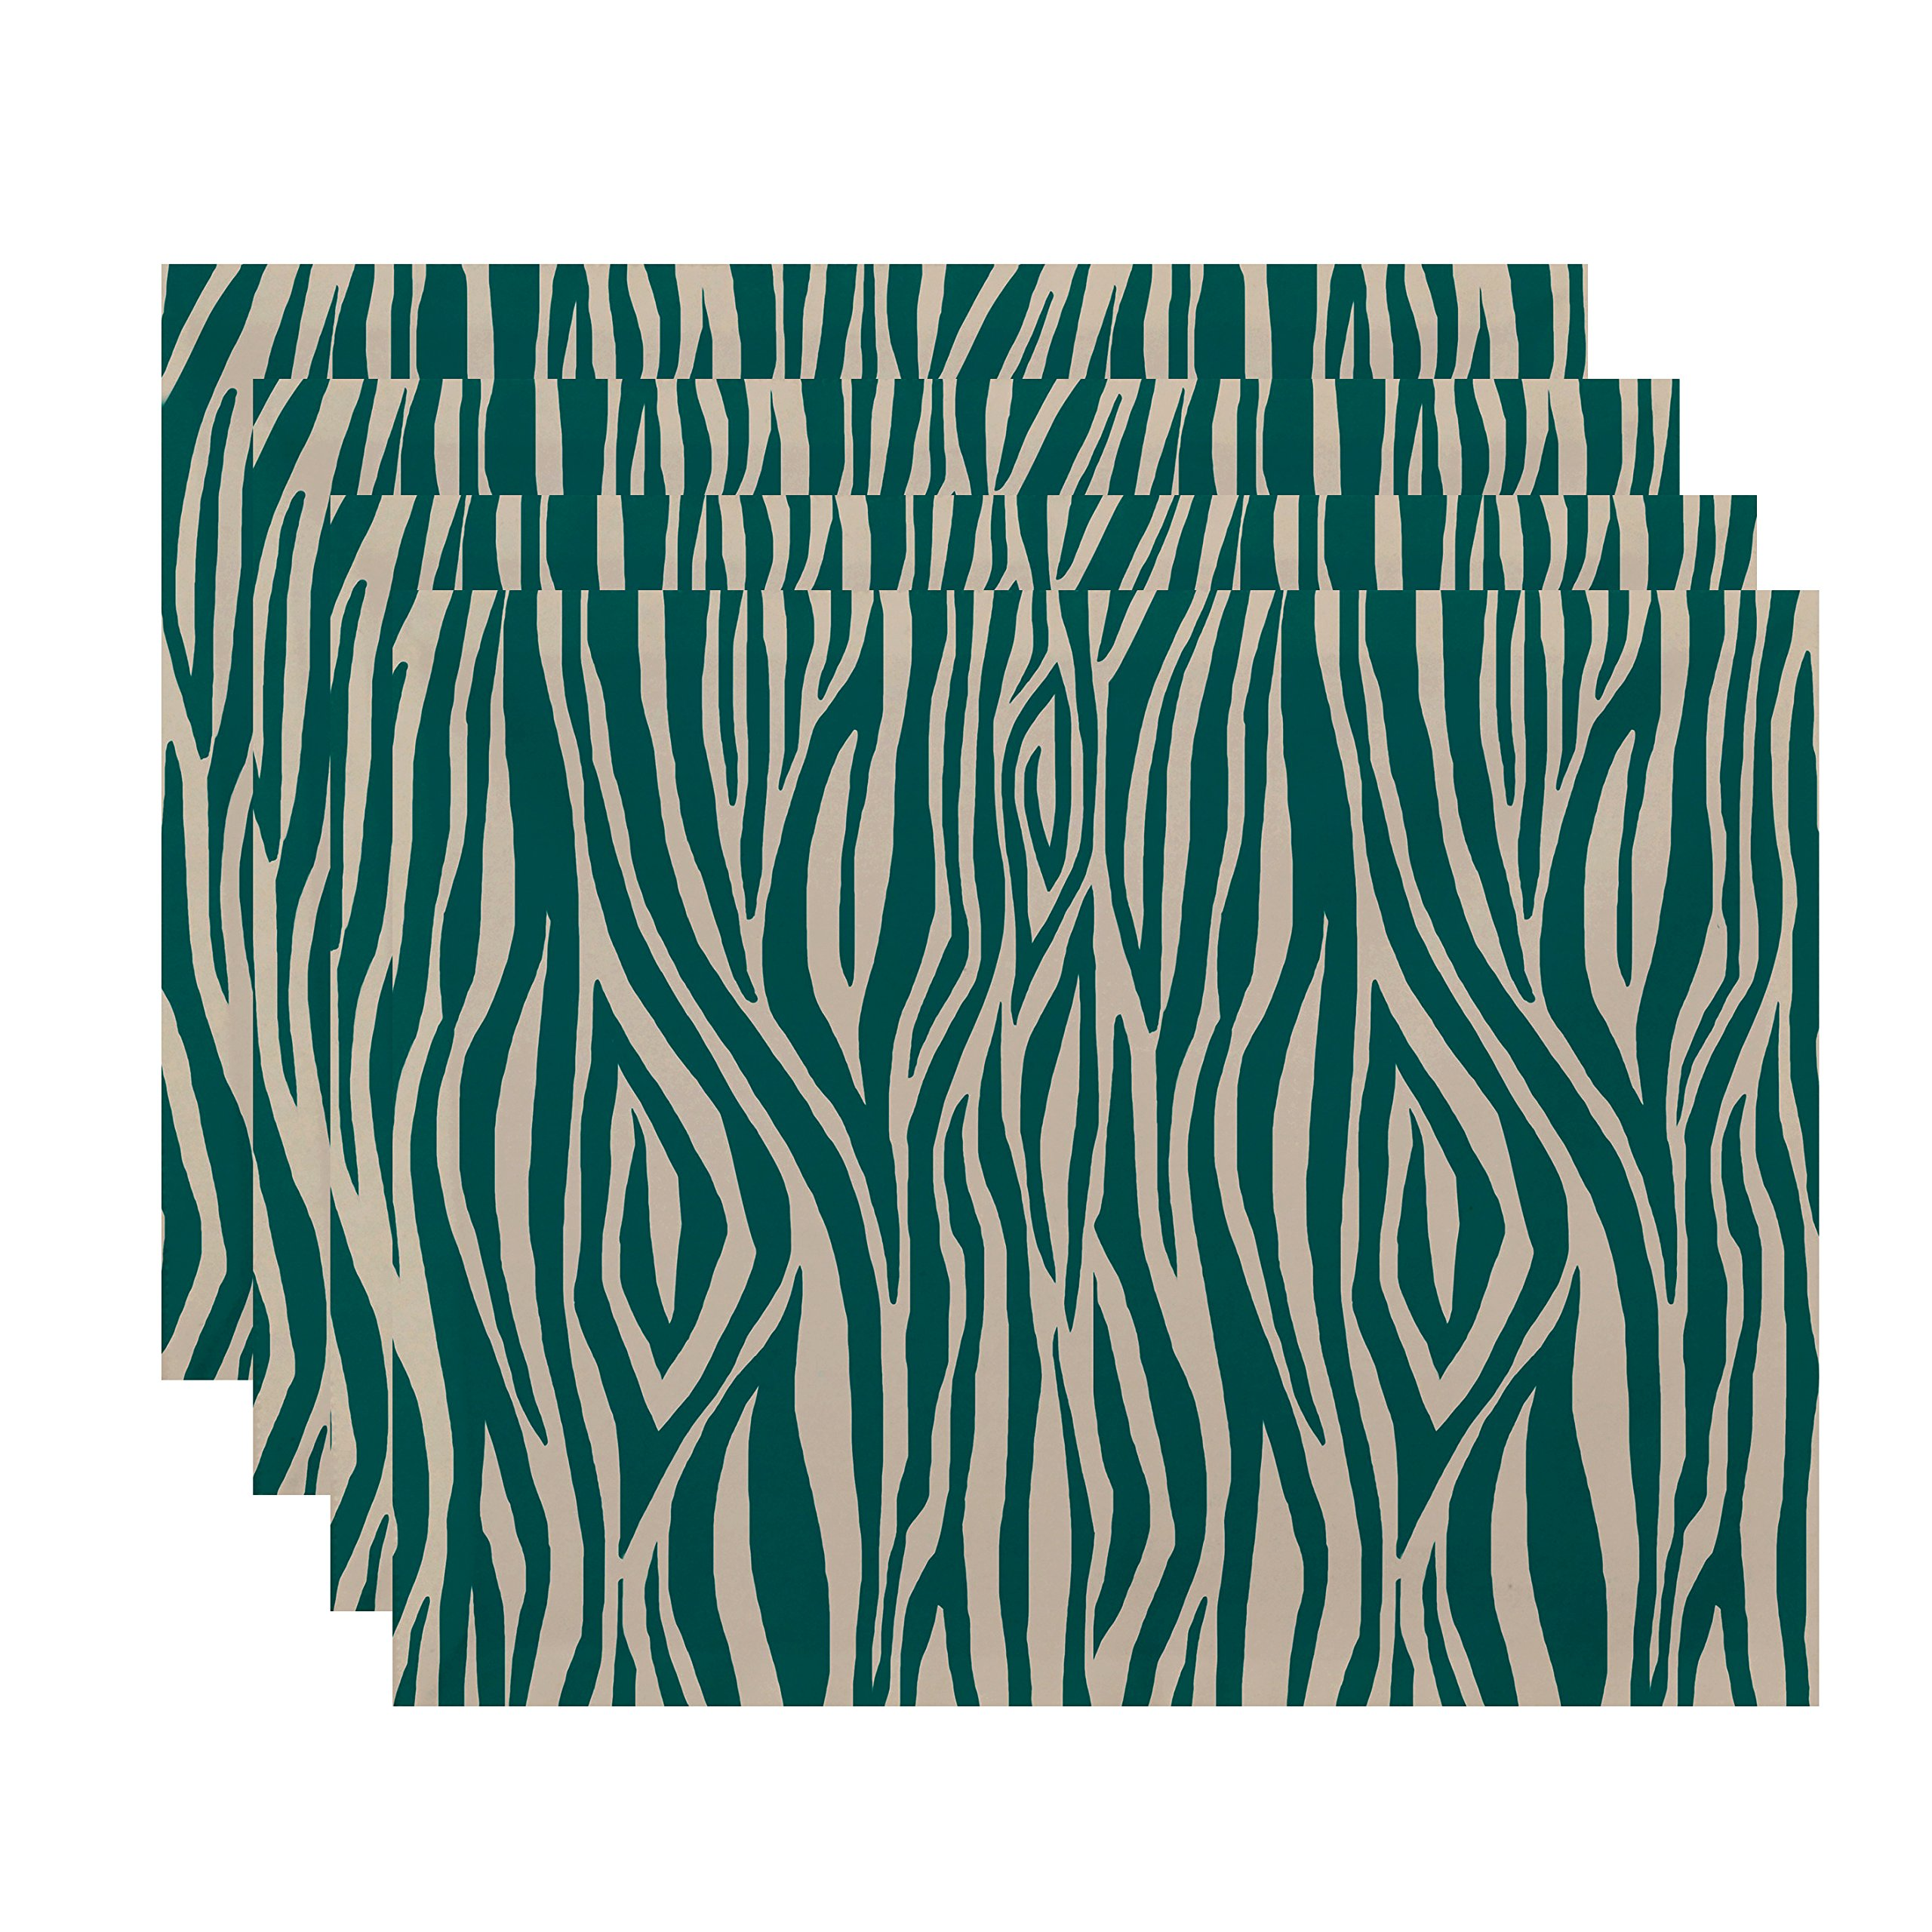 E by design PT4GN722GR31IV5 18x14, Wood Stripe, Geometric Print Placemat, Jade, (Set of 4)